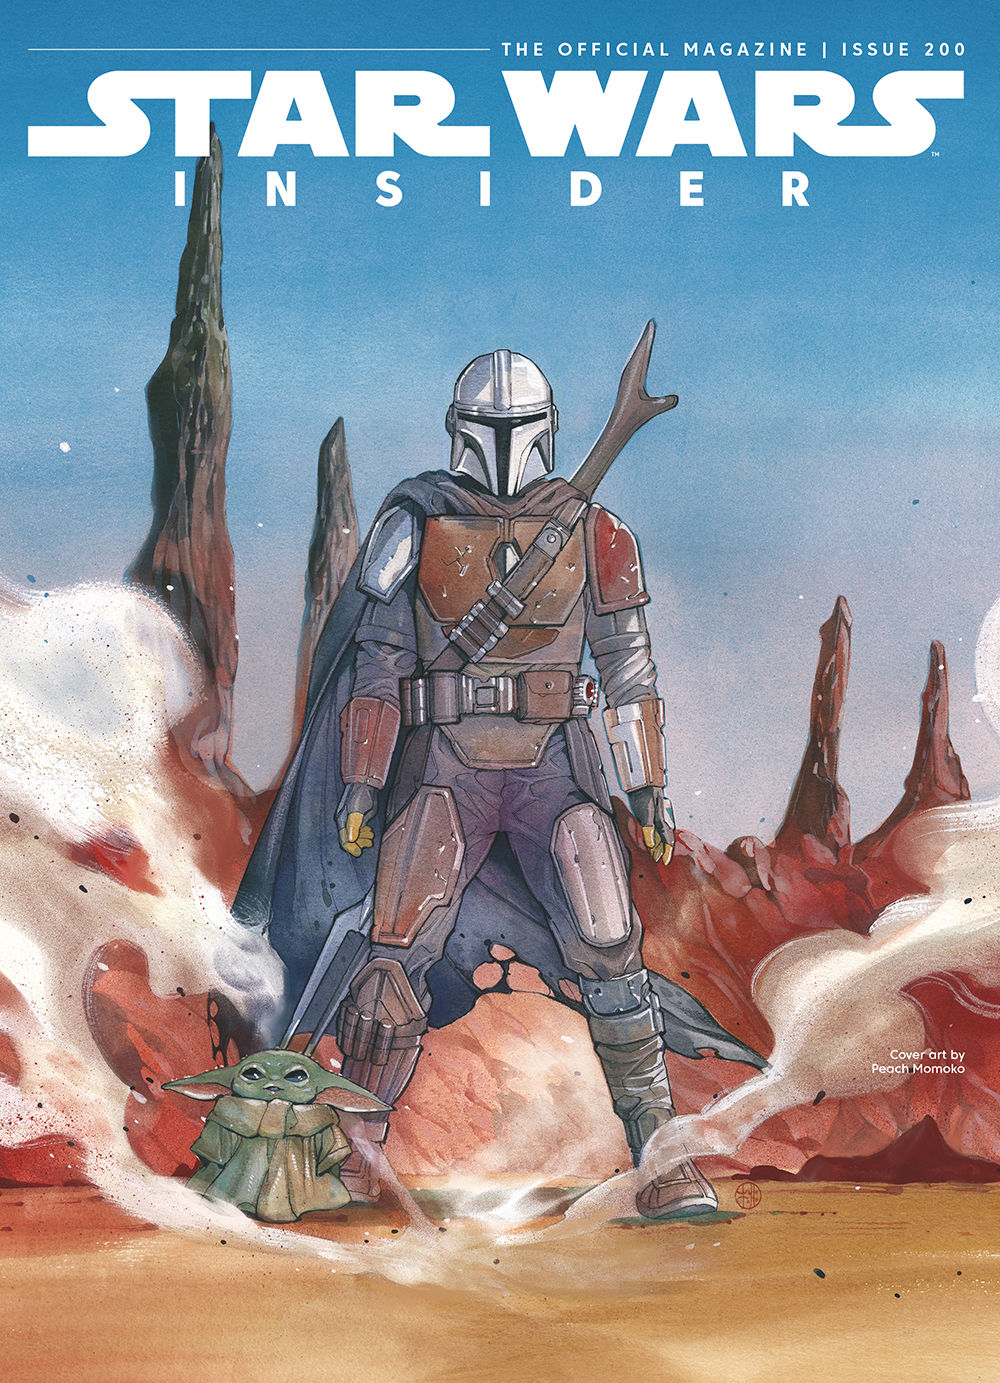 Star Wars Insider #200 (Comic Store Cover) (09.02.2021)